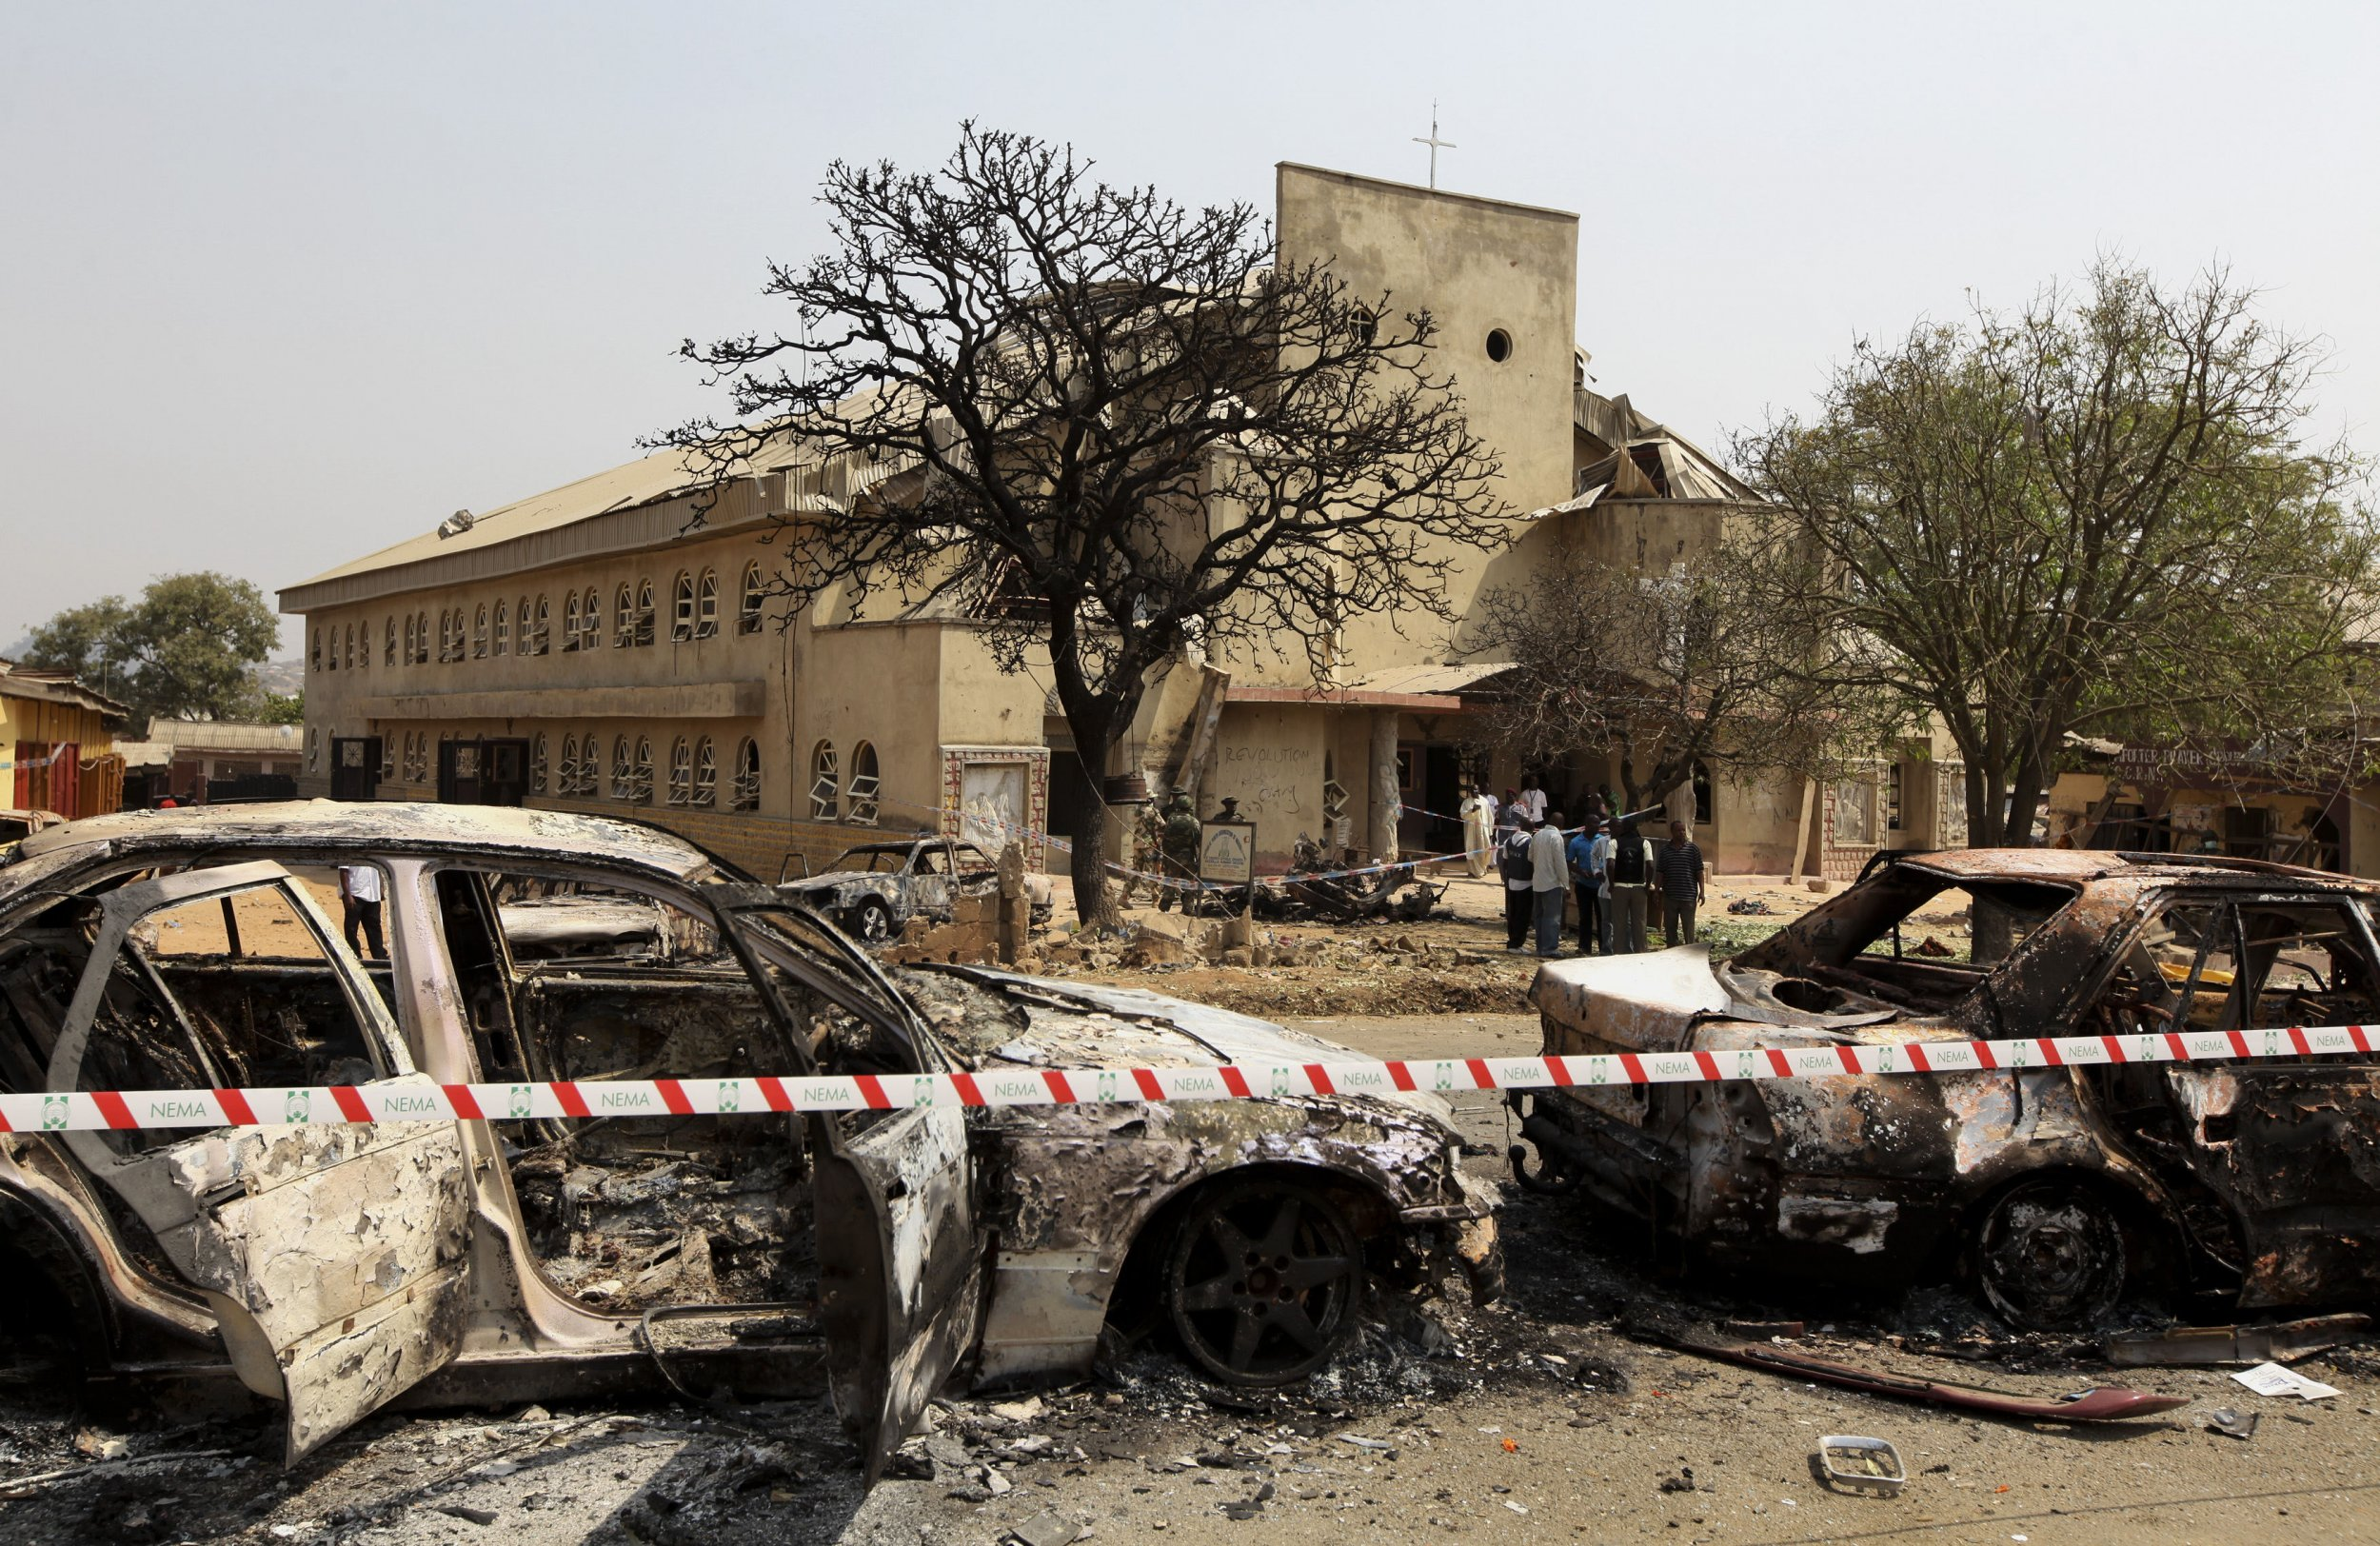 boko haram Boko haram has historical ties with al-qa'idain the lands of the islamic maghreb and al-shabaab but these have dissipateddue to boko haram leadership's more recent alignment with islamic state links to australia.